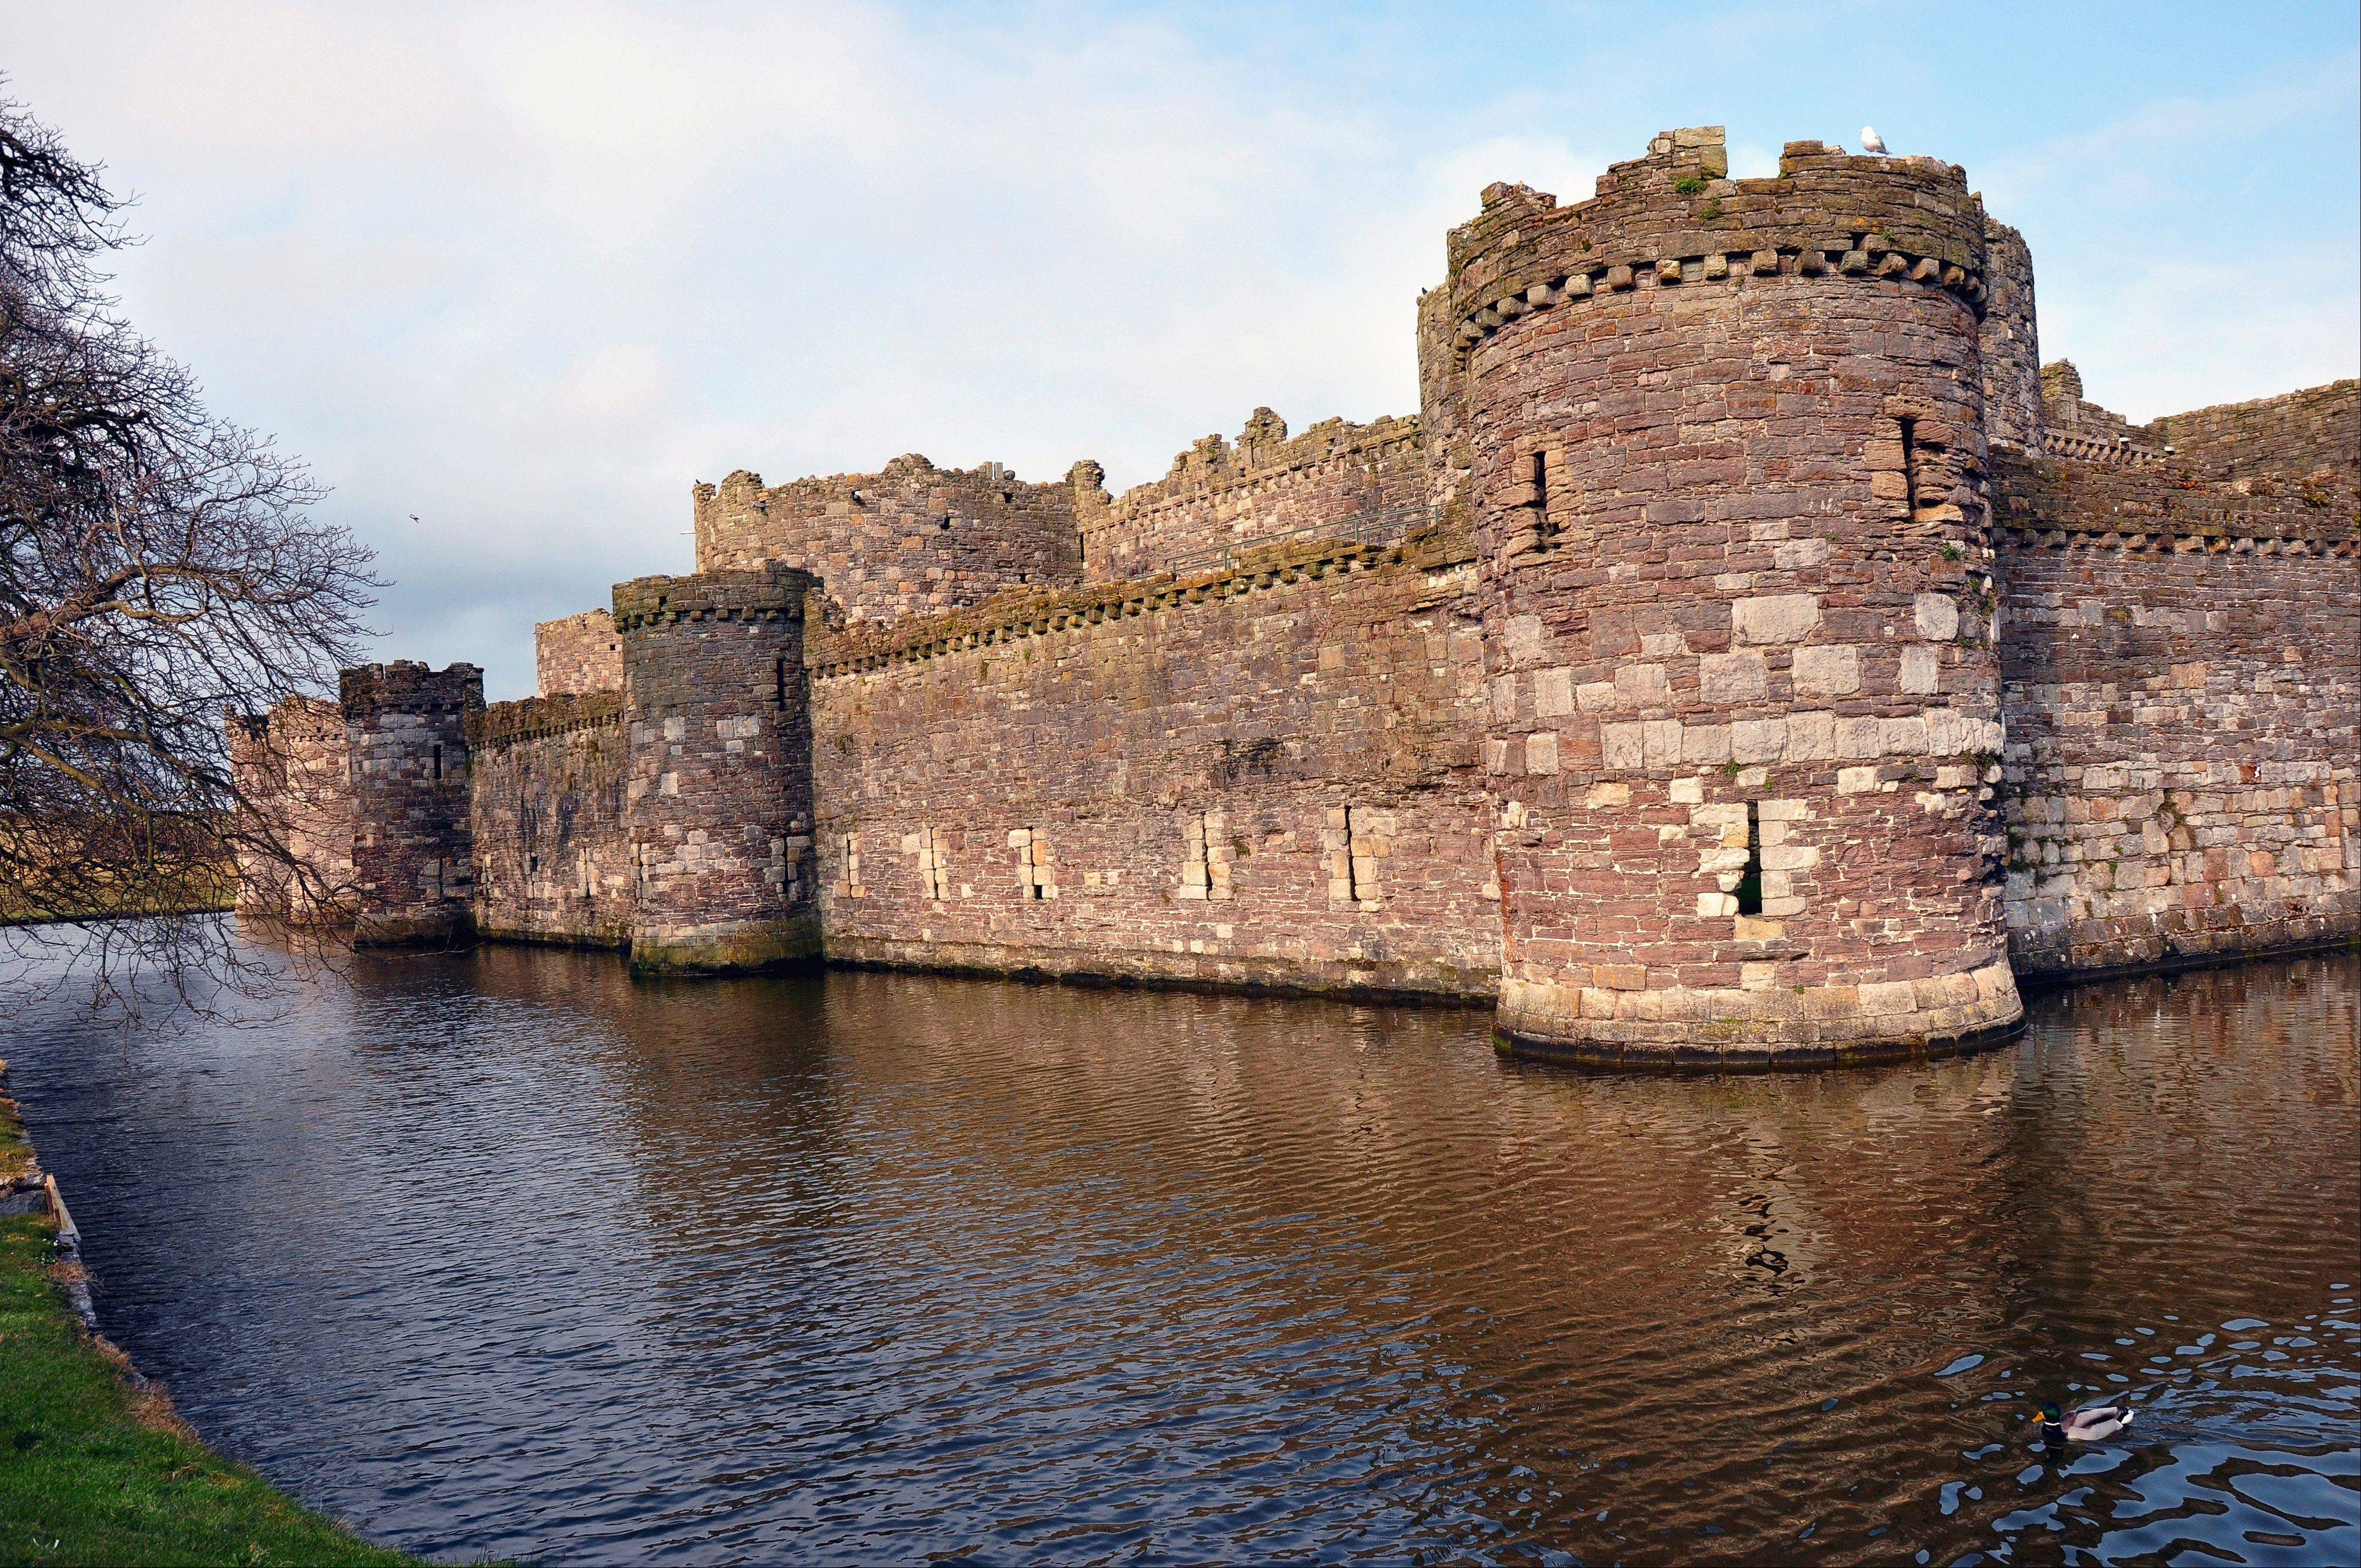 A moat surrounds Beaumaris Castle on Anglesey Island in North Wales. It's considered the most technically correct medieval castle in all of Britain.